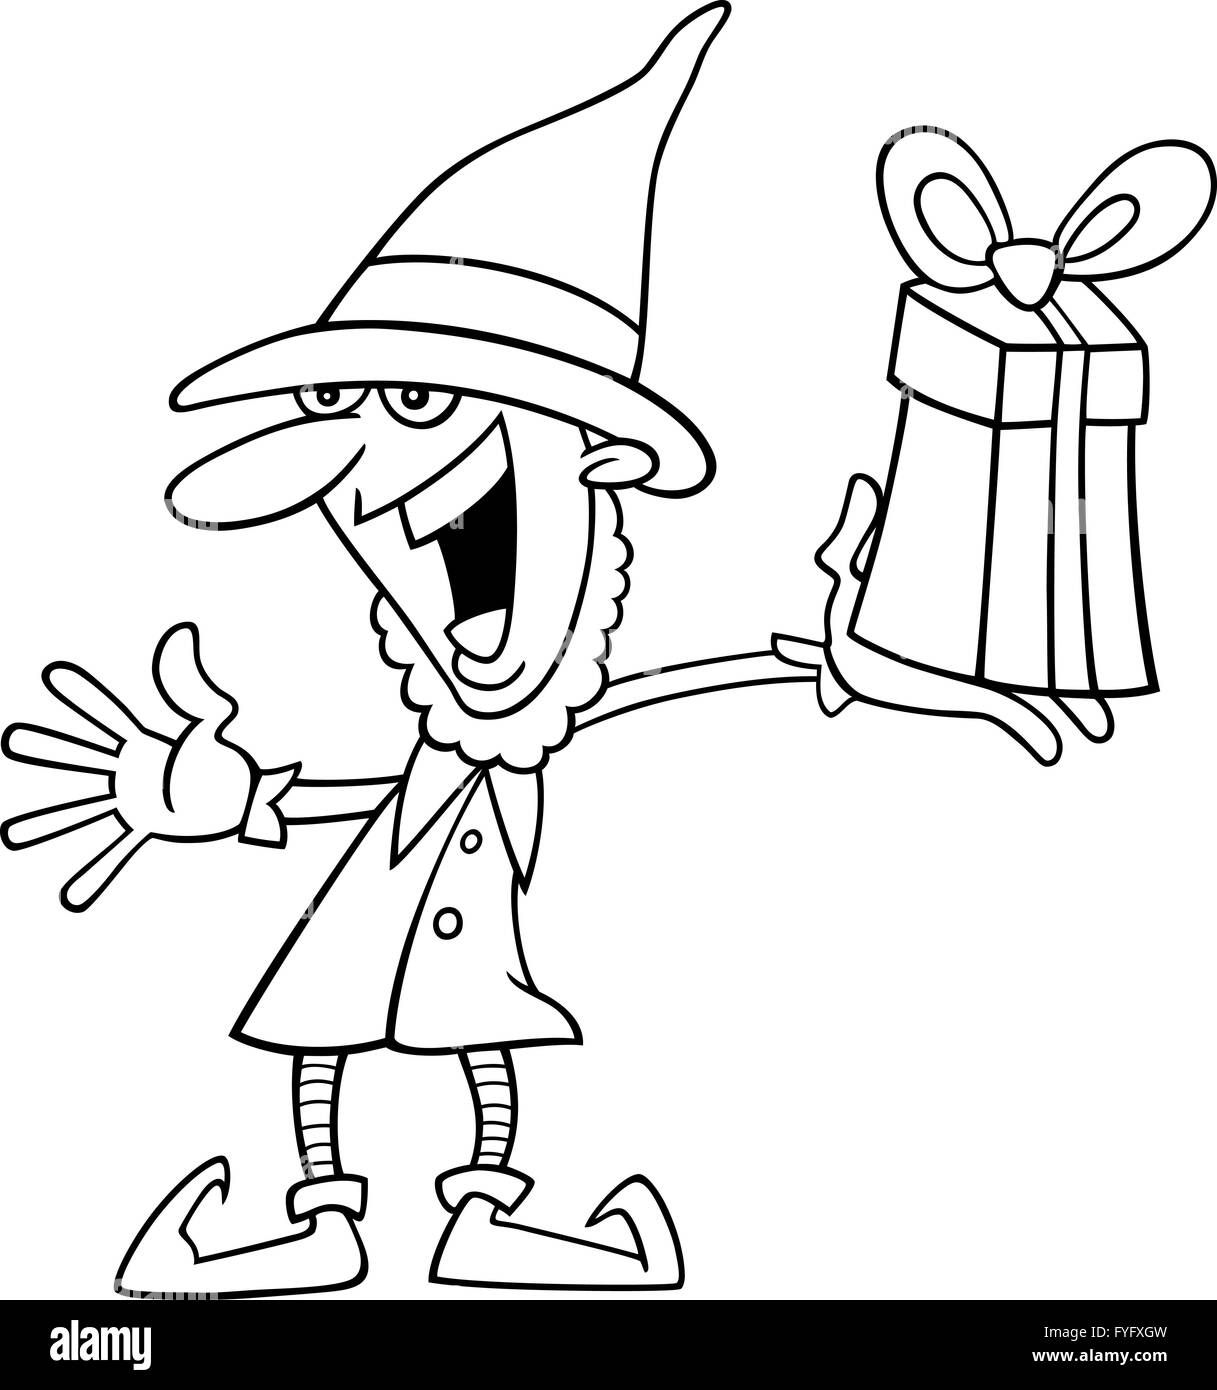 christmas elf for coloring book - Stock Image